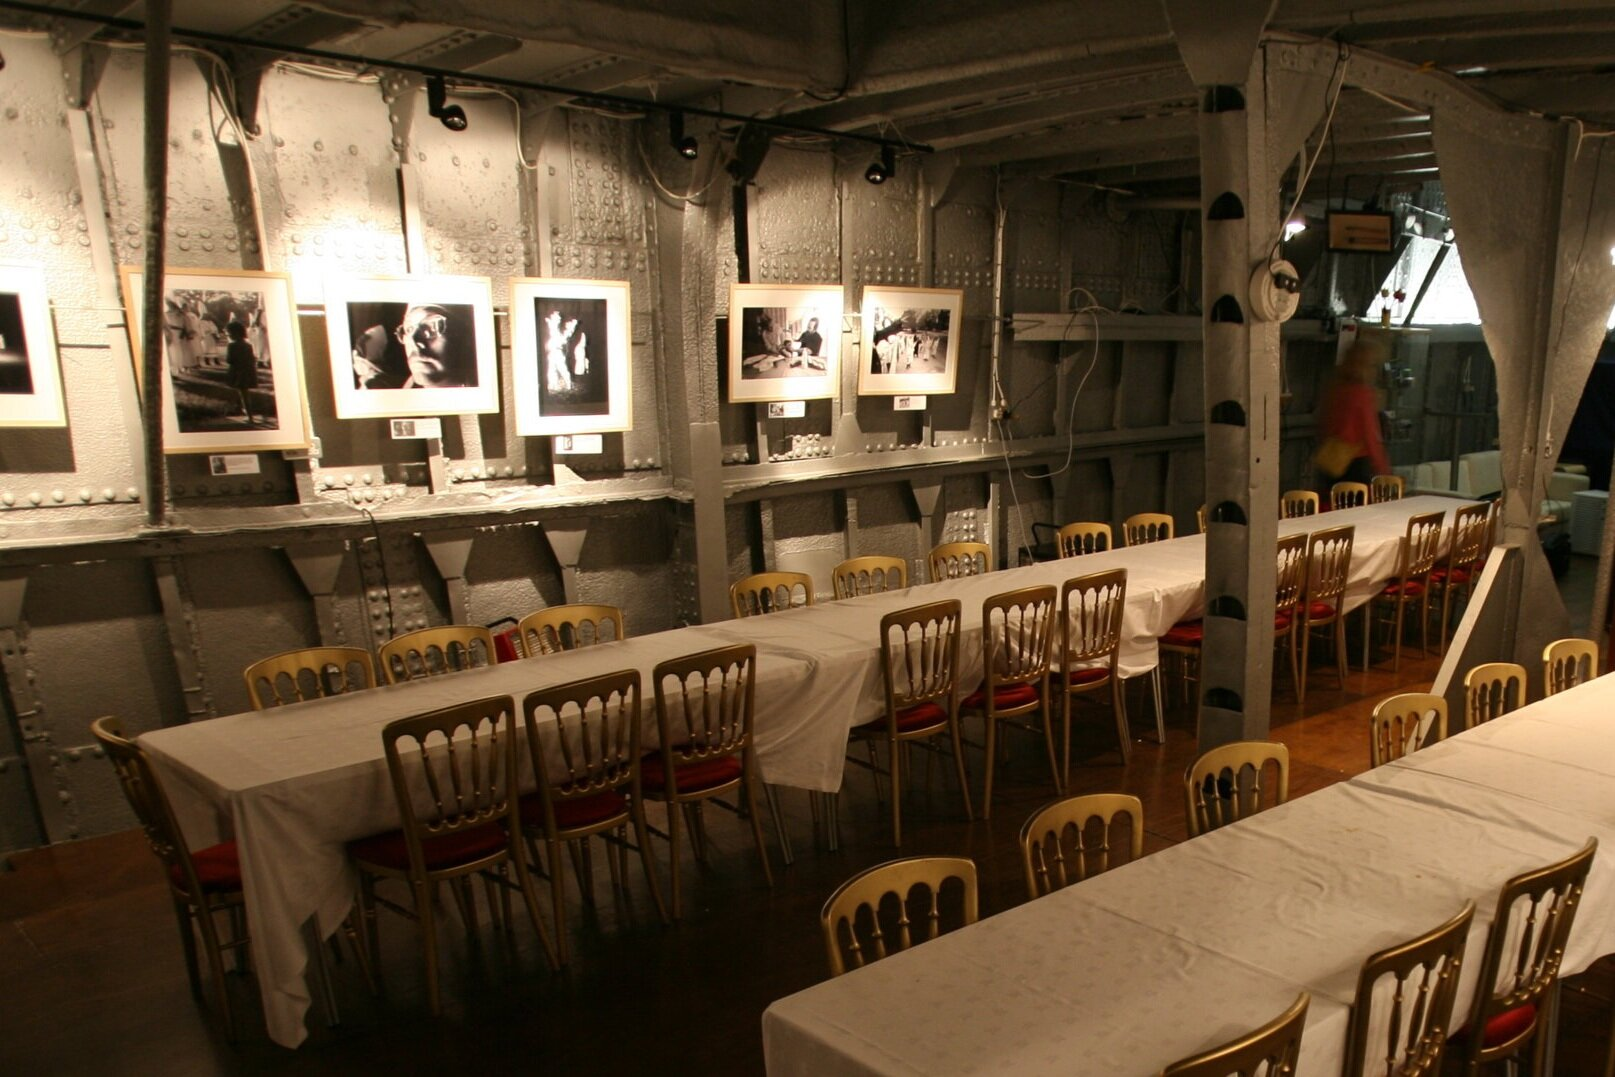 Hold used as photography gallery and venue hire space